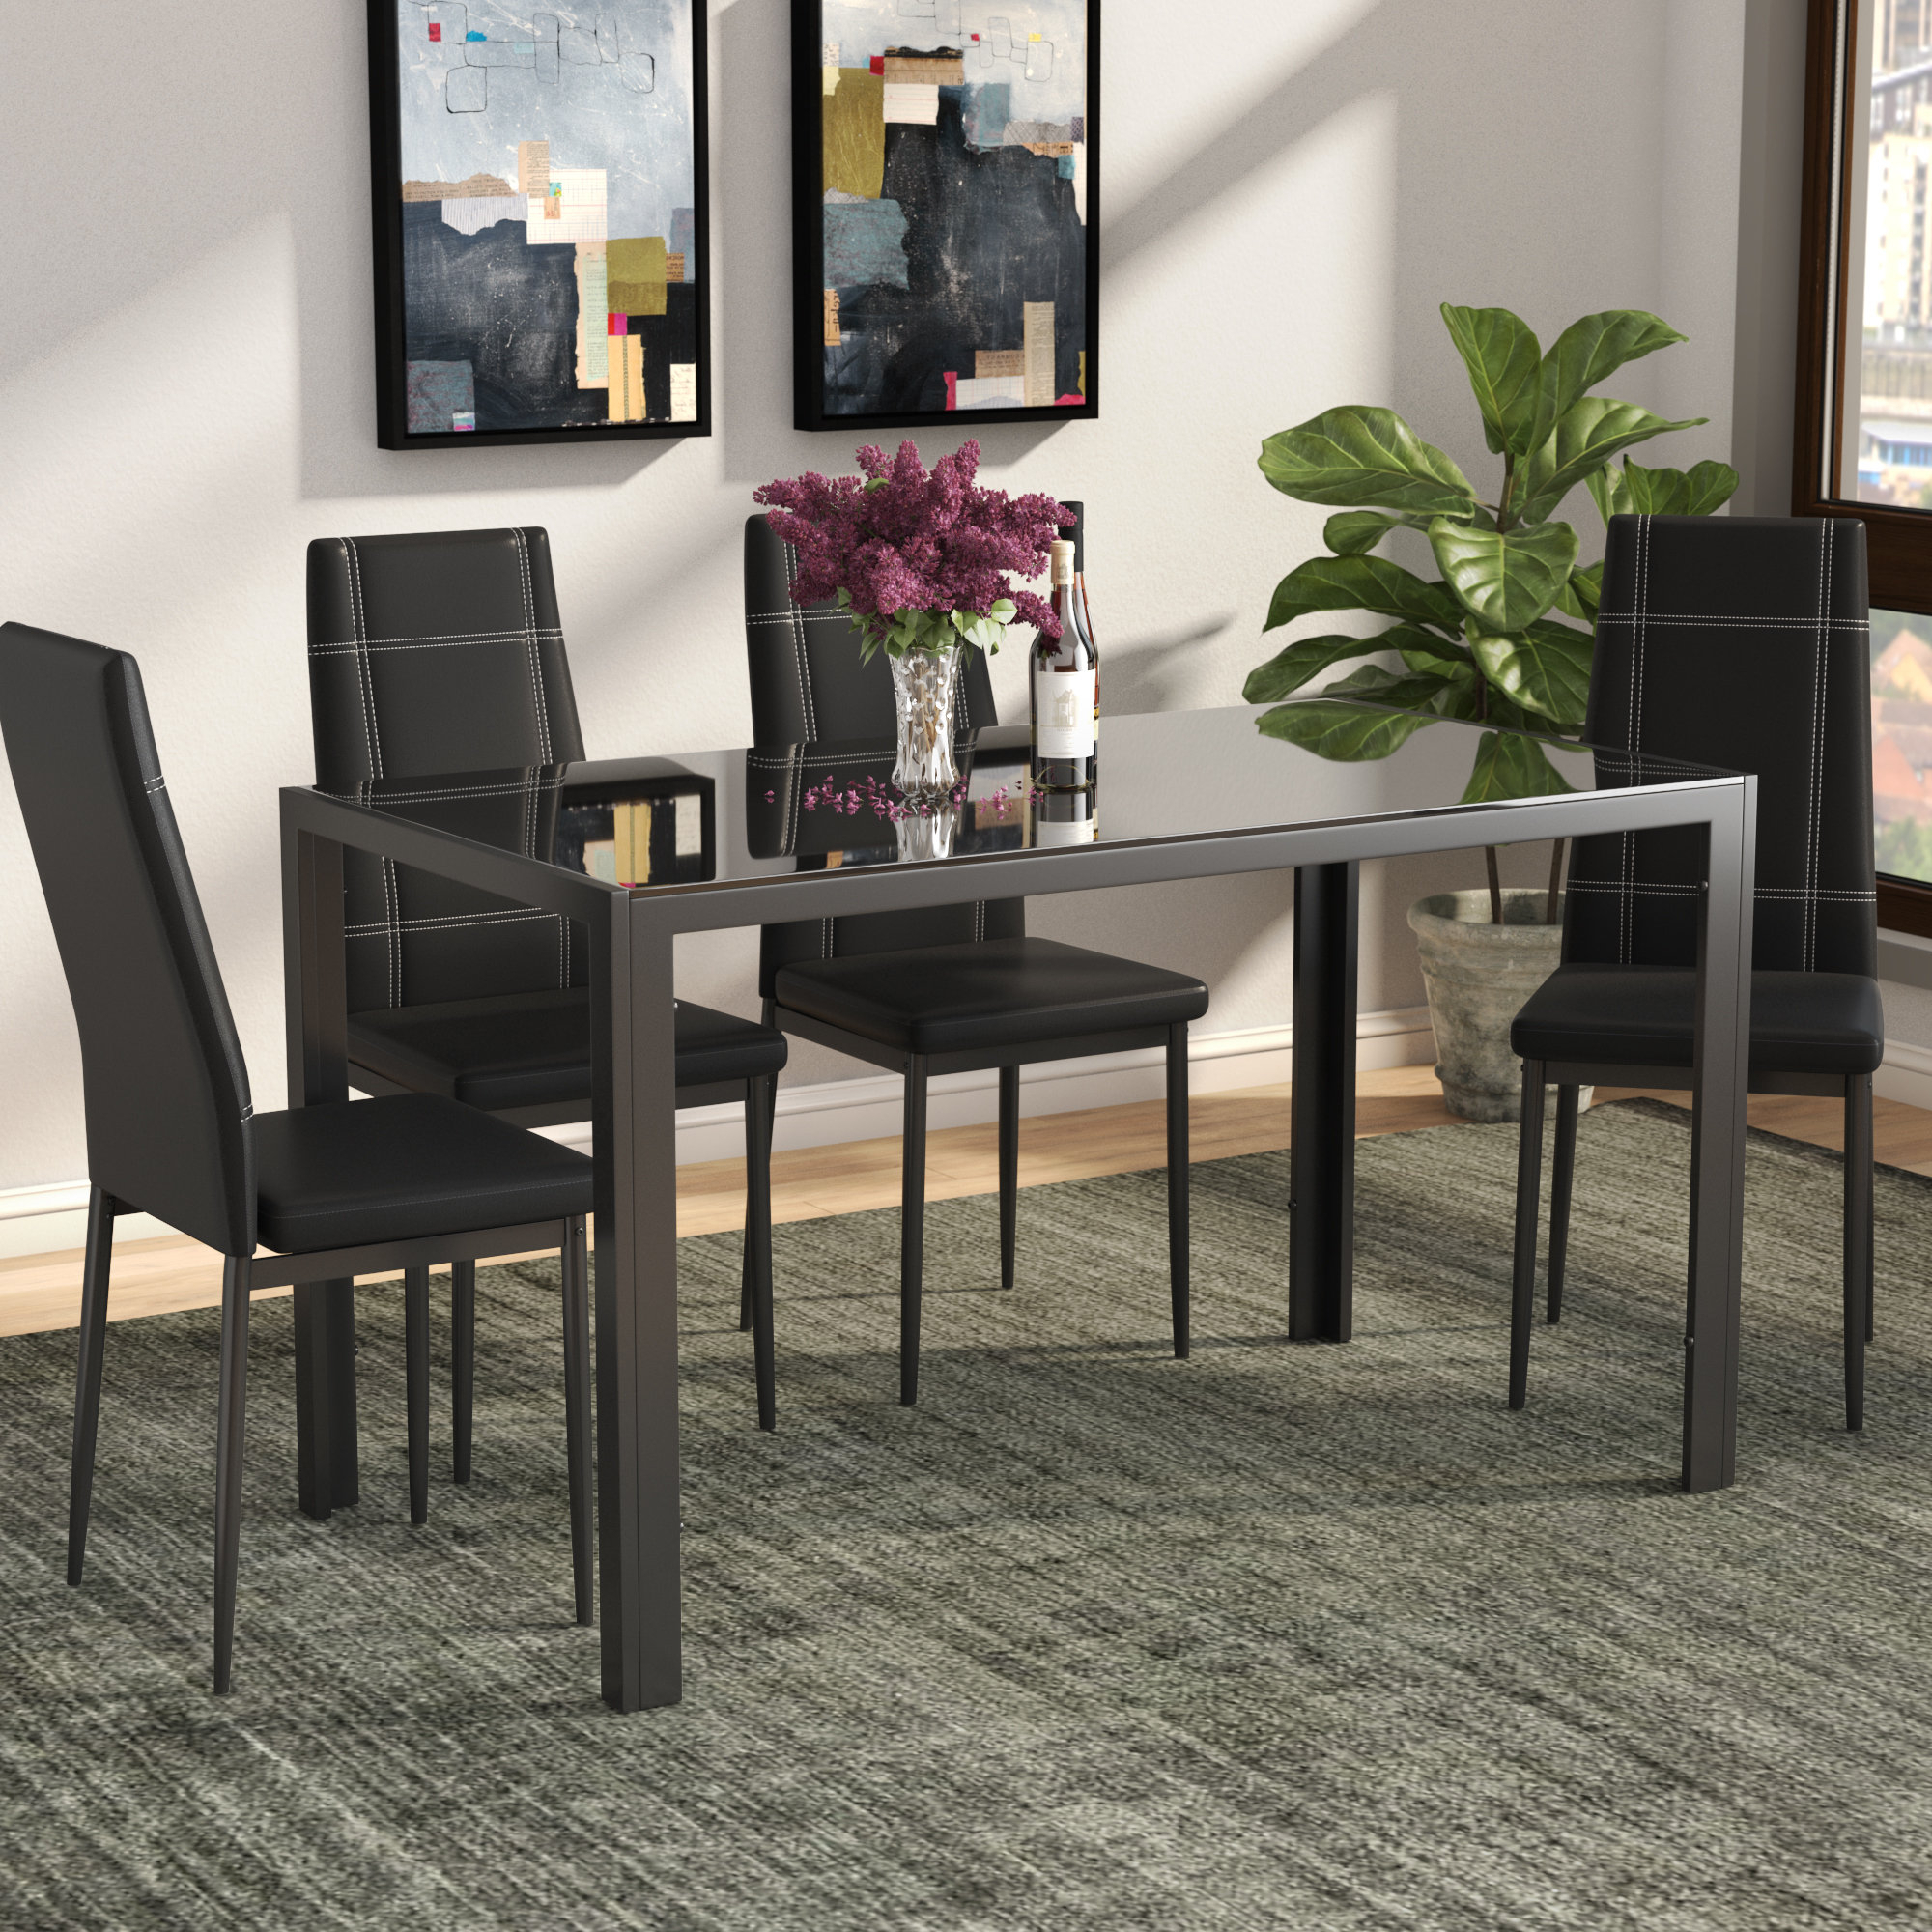 Wayfair In Famous Lamotte 5 Piece Dining Sets (View 5 of 25)